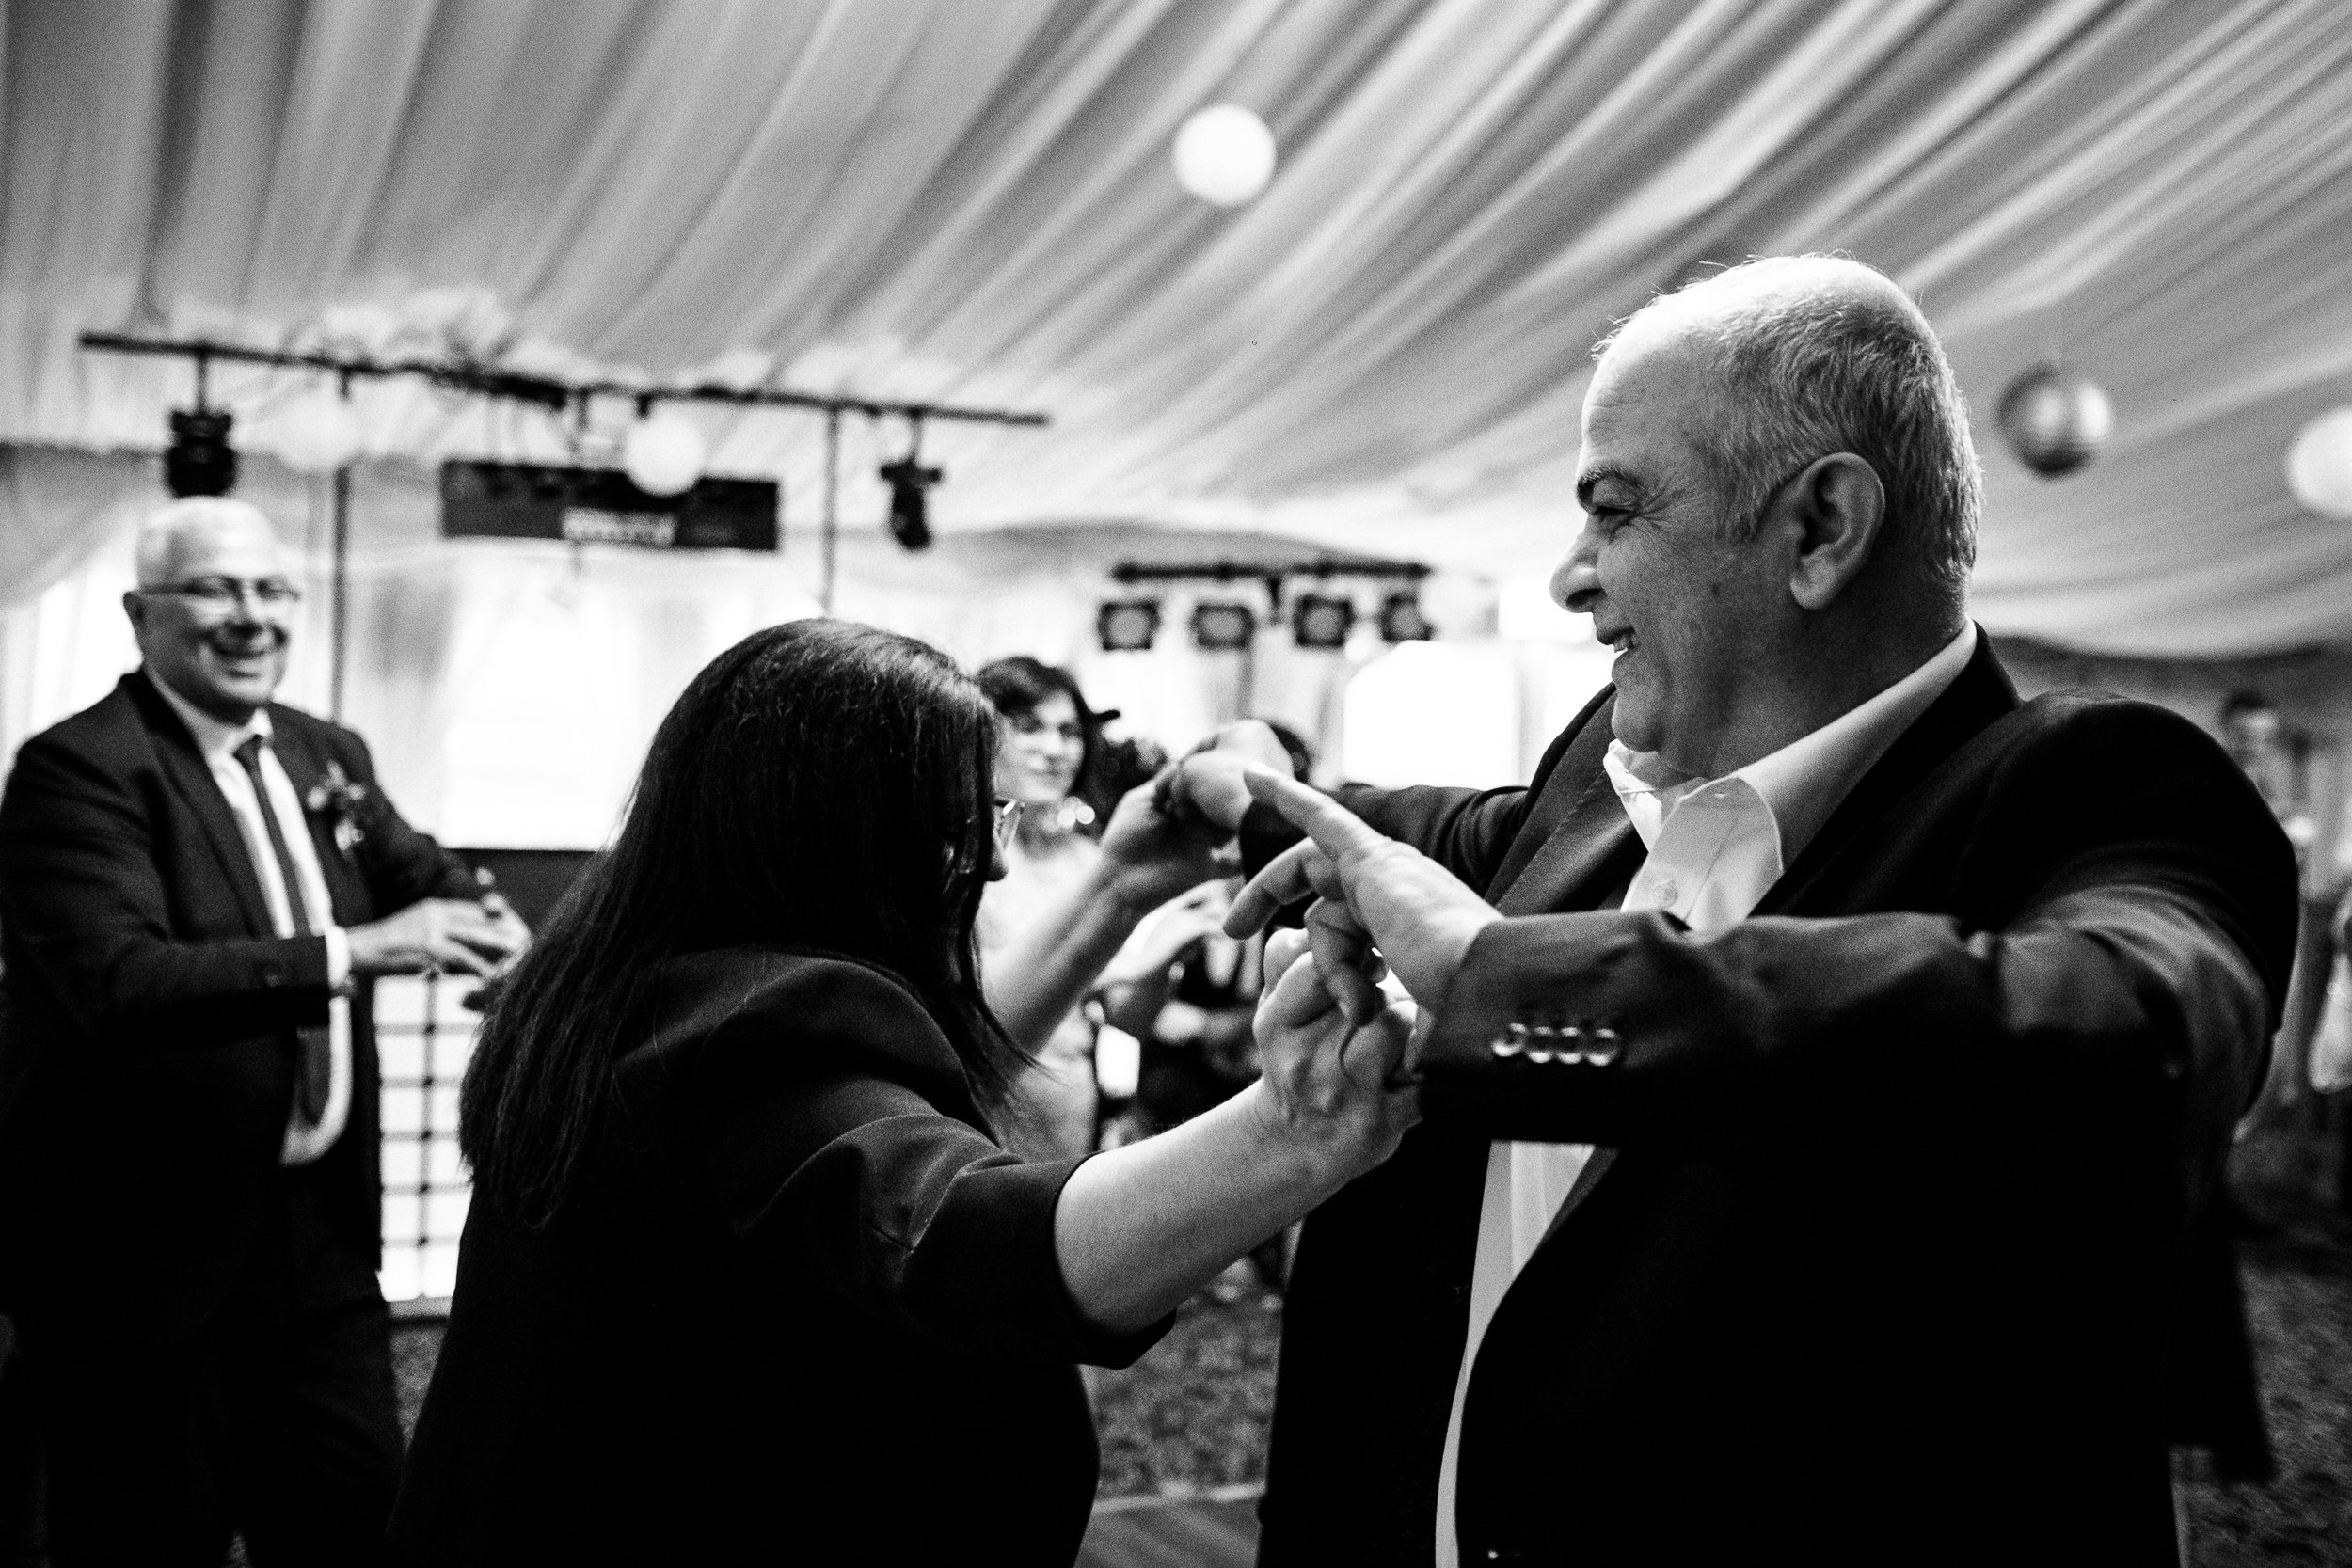 Birmingham Documentary Wedding Photography at New Hall, Sutton Coldfield Turkish Red Candid Reportage - Jenny Harper-69.jpg